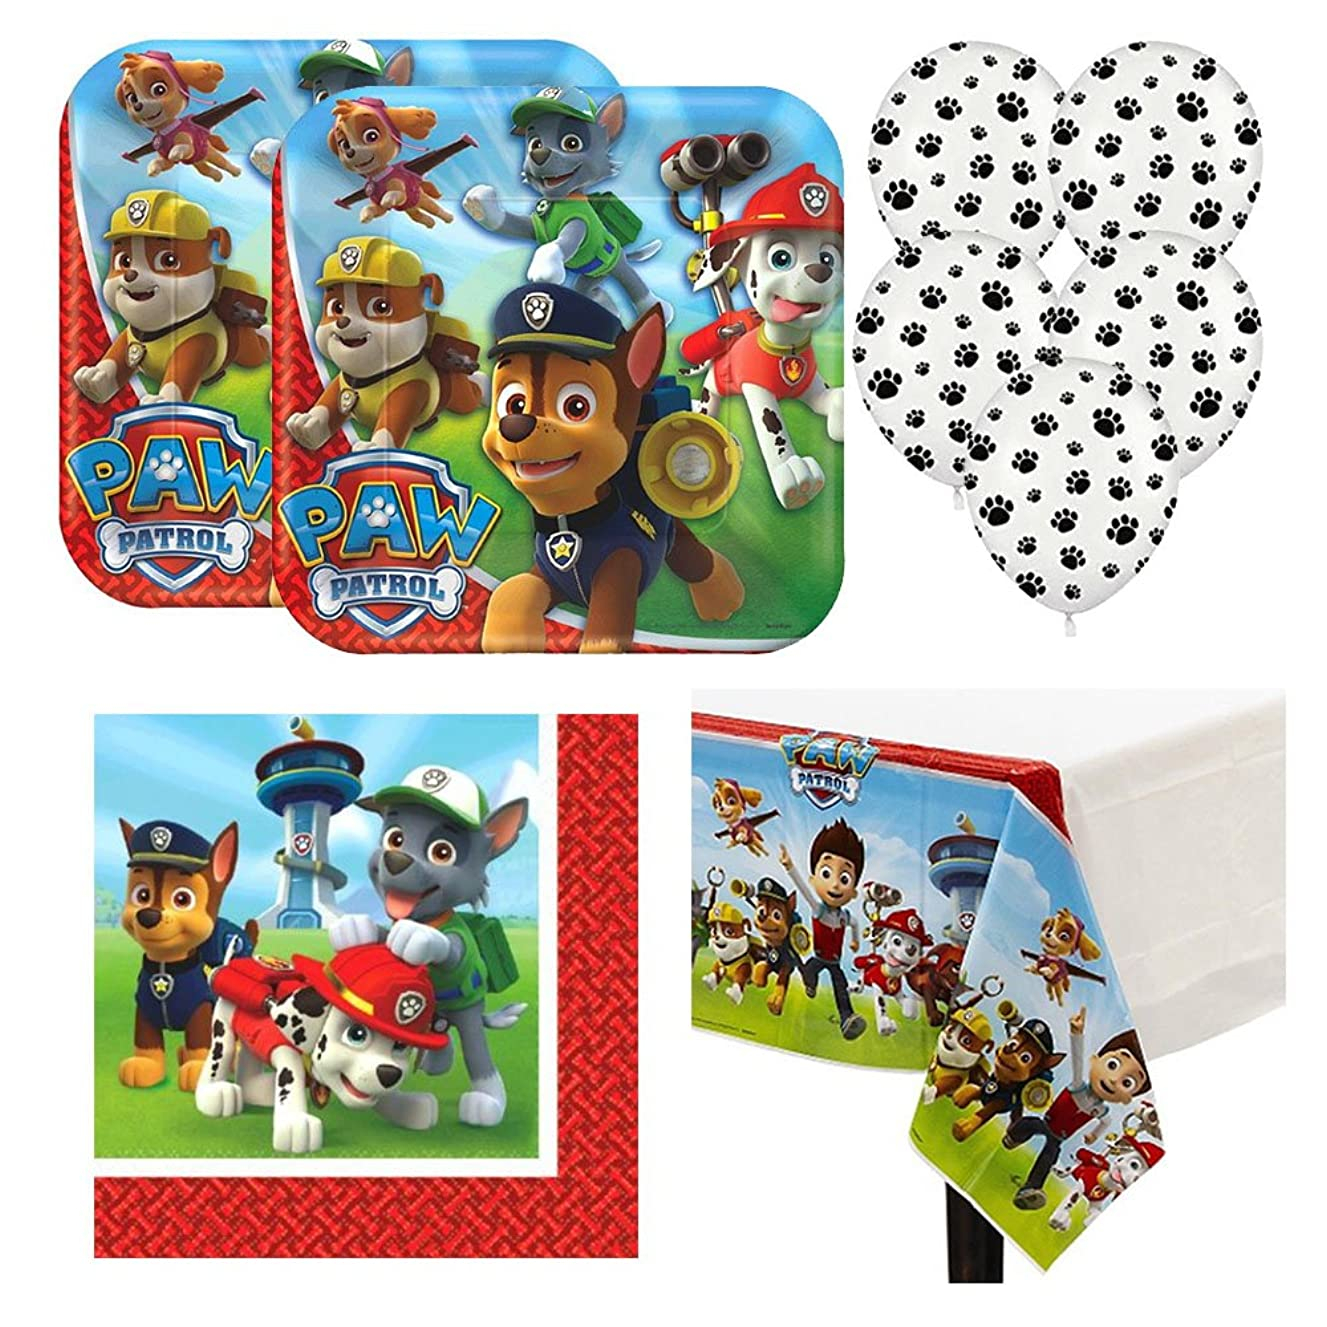 Paw Patrol Birthday Party Pack, 16 guests, lunch plates, napkins, tablecover plus paw prints balloons